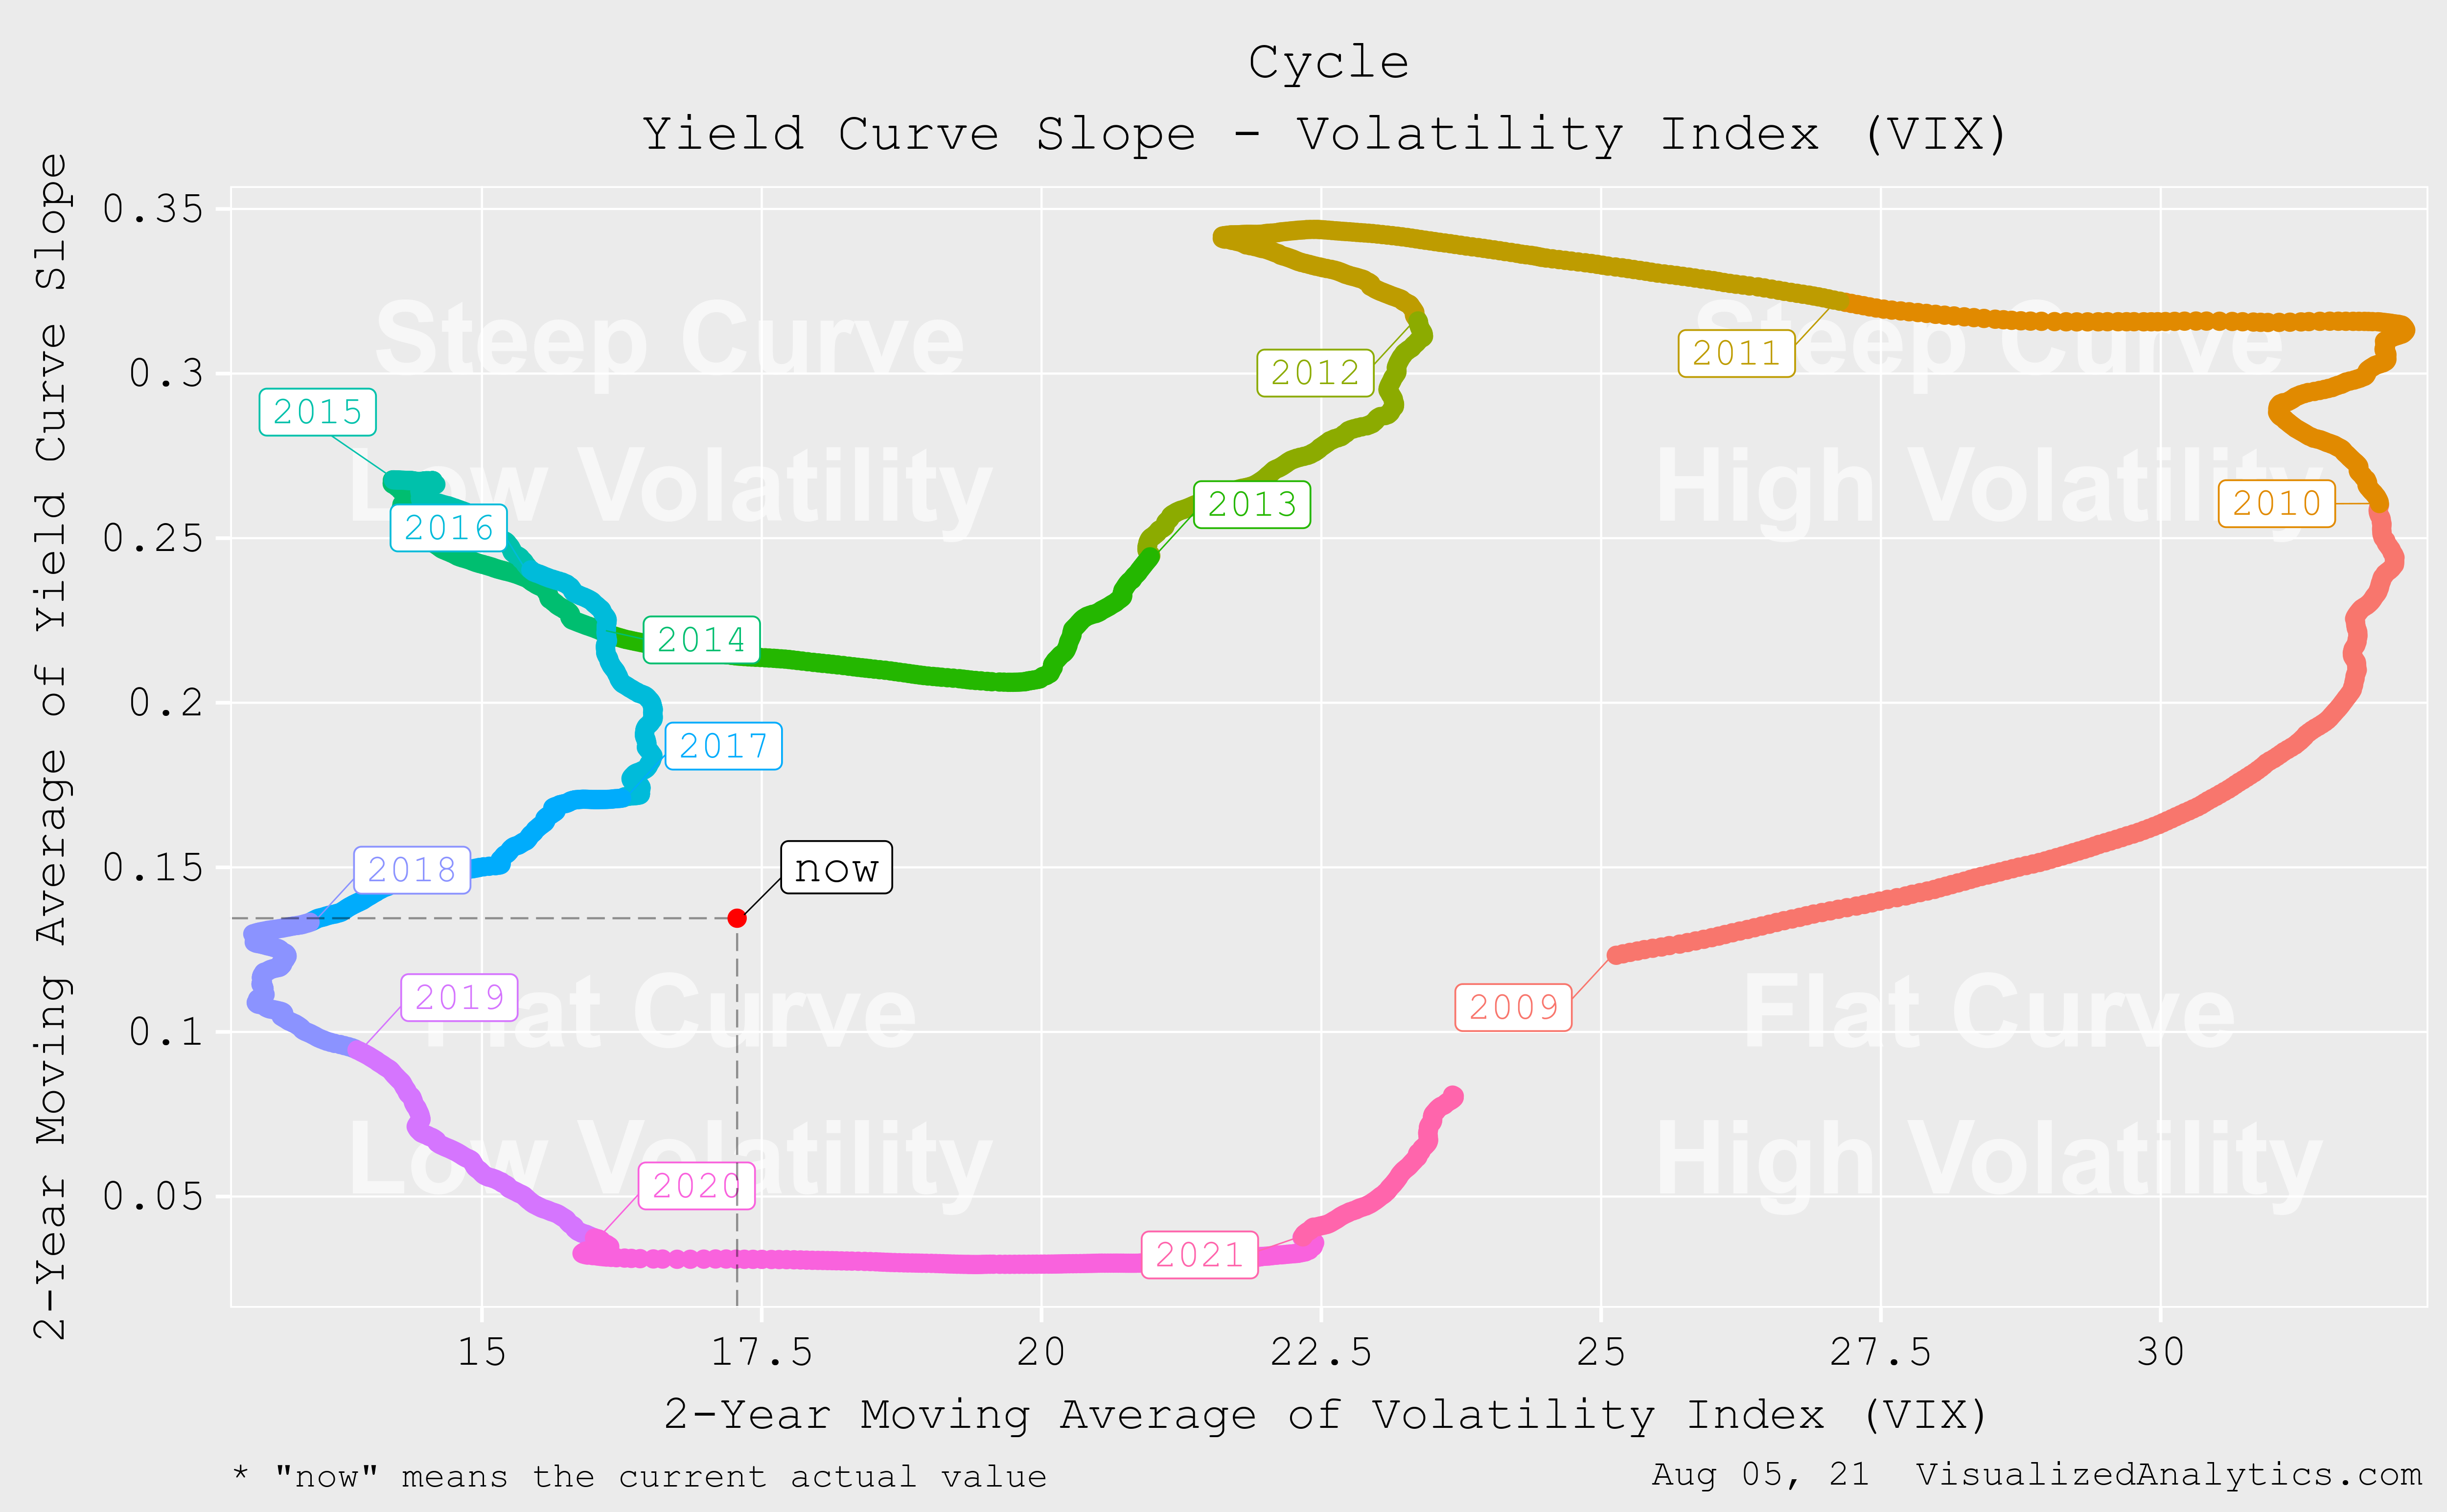 yield curve slope and VIX cycle